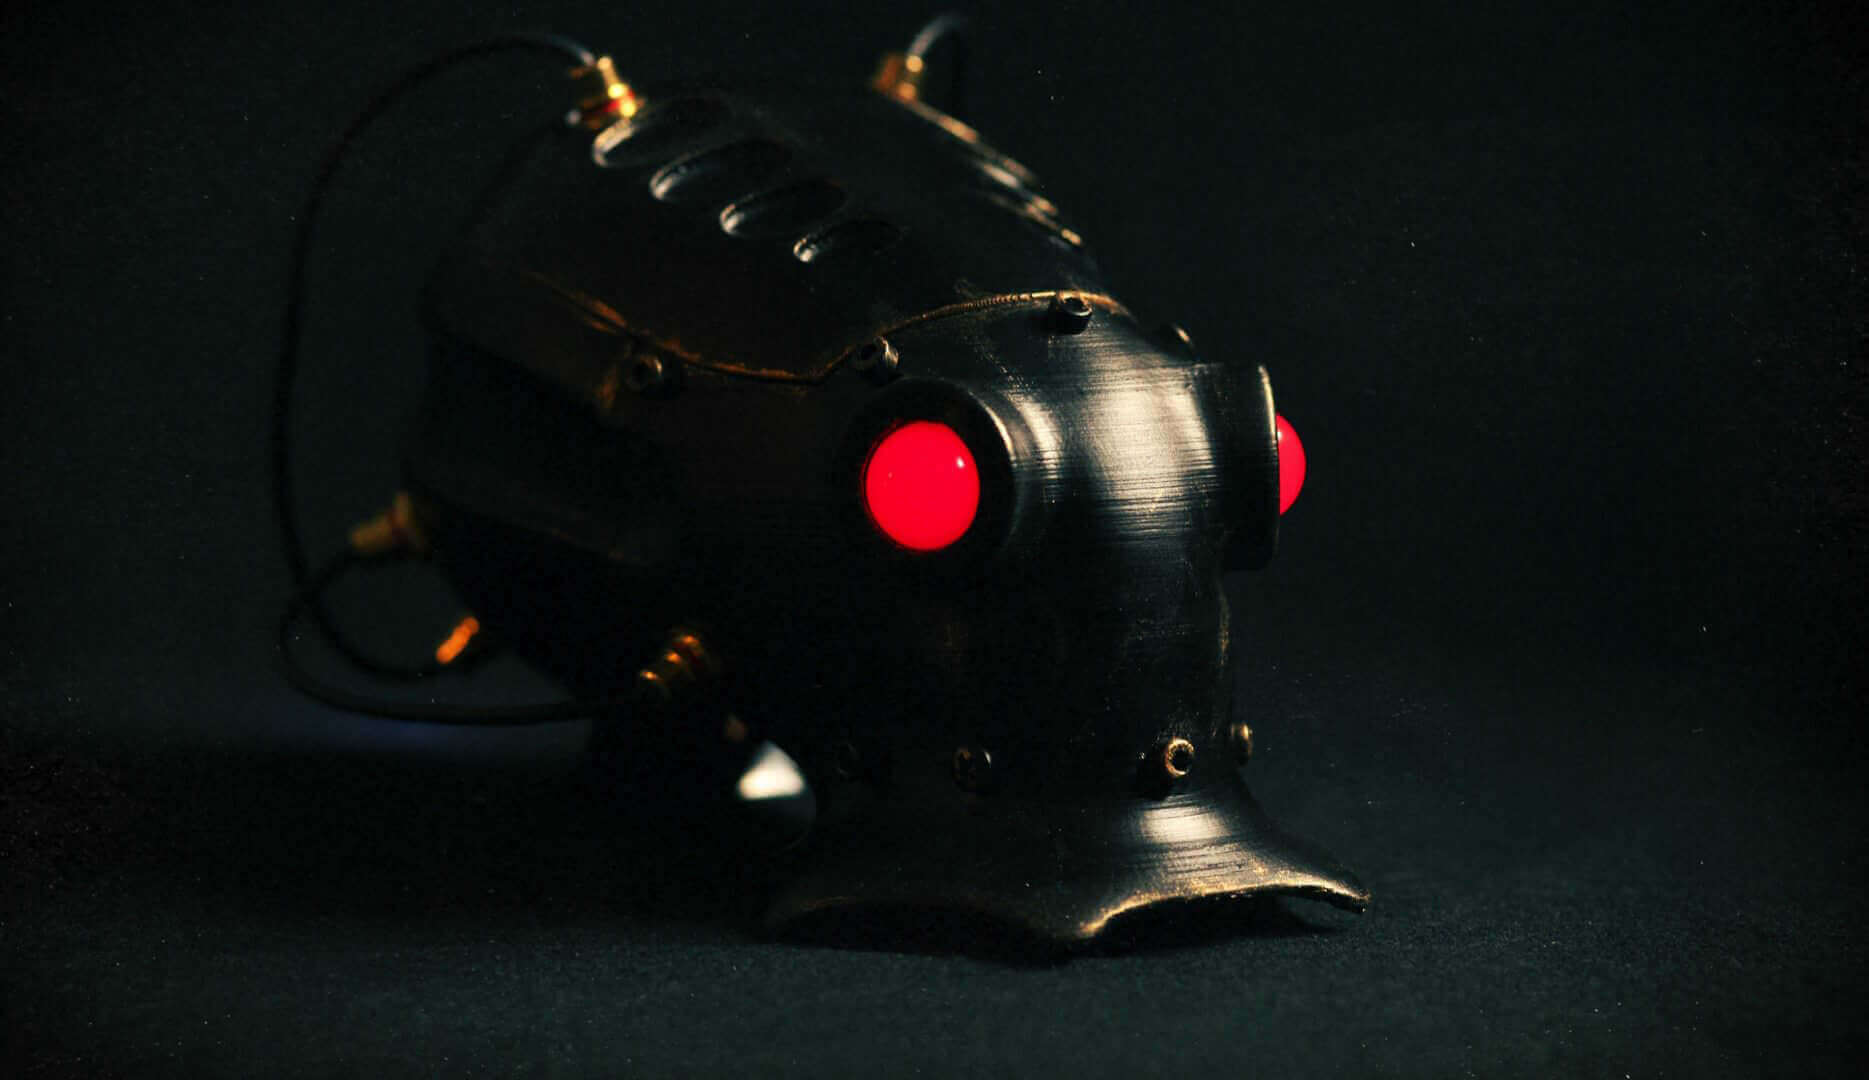 3D Printed Cyber Octopuses Star in Retro-Future Sci-Fi Movie | All3DP